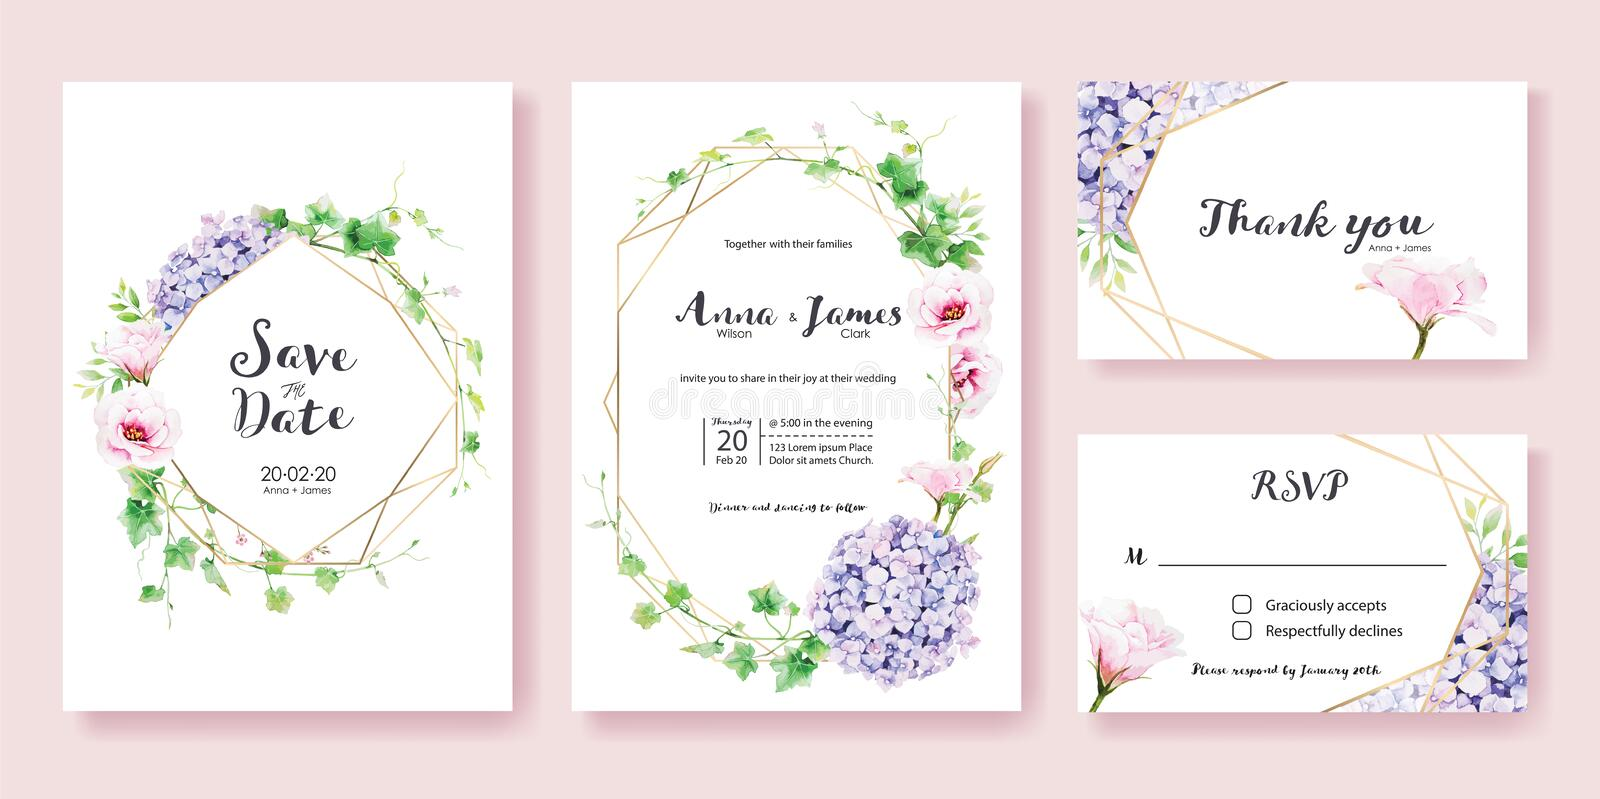 Wedding Invitation, save the date, thank you, rsvp card Design template.Greenery Ivy, Pink Lisianthus, Hydrangea flower. stock illustration